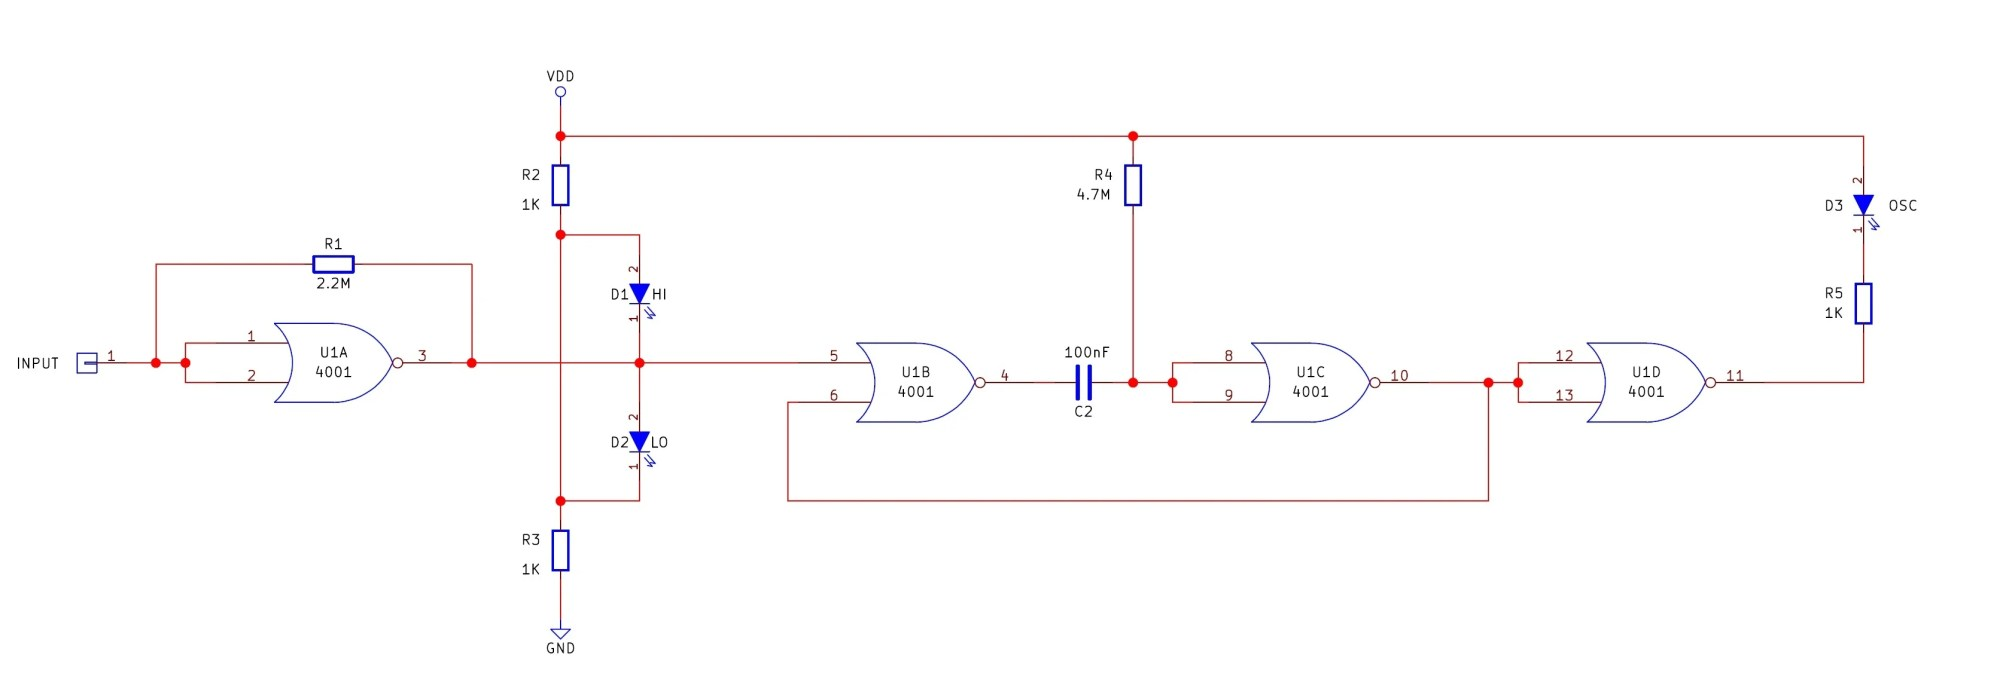 hight resolution of the logic probe circuit consists of a single 4001 quad nor gate the first circuit u1a is an oscillator and the second circuit u1b and u1c is a